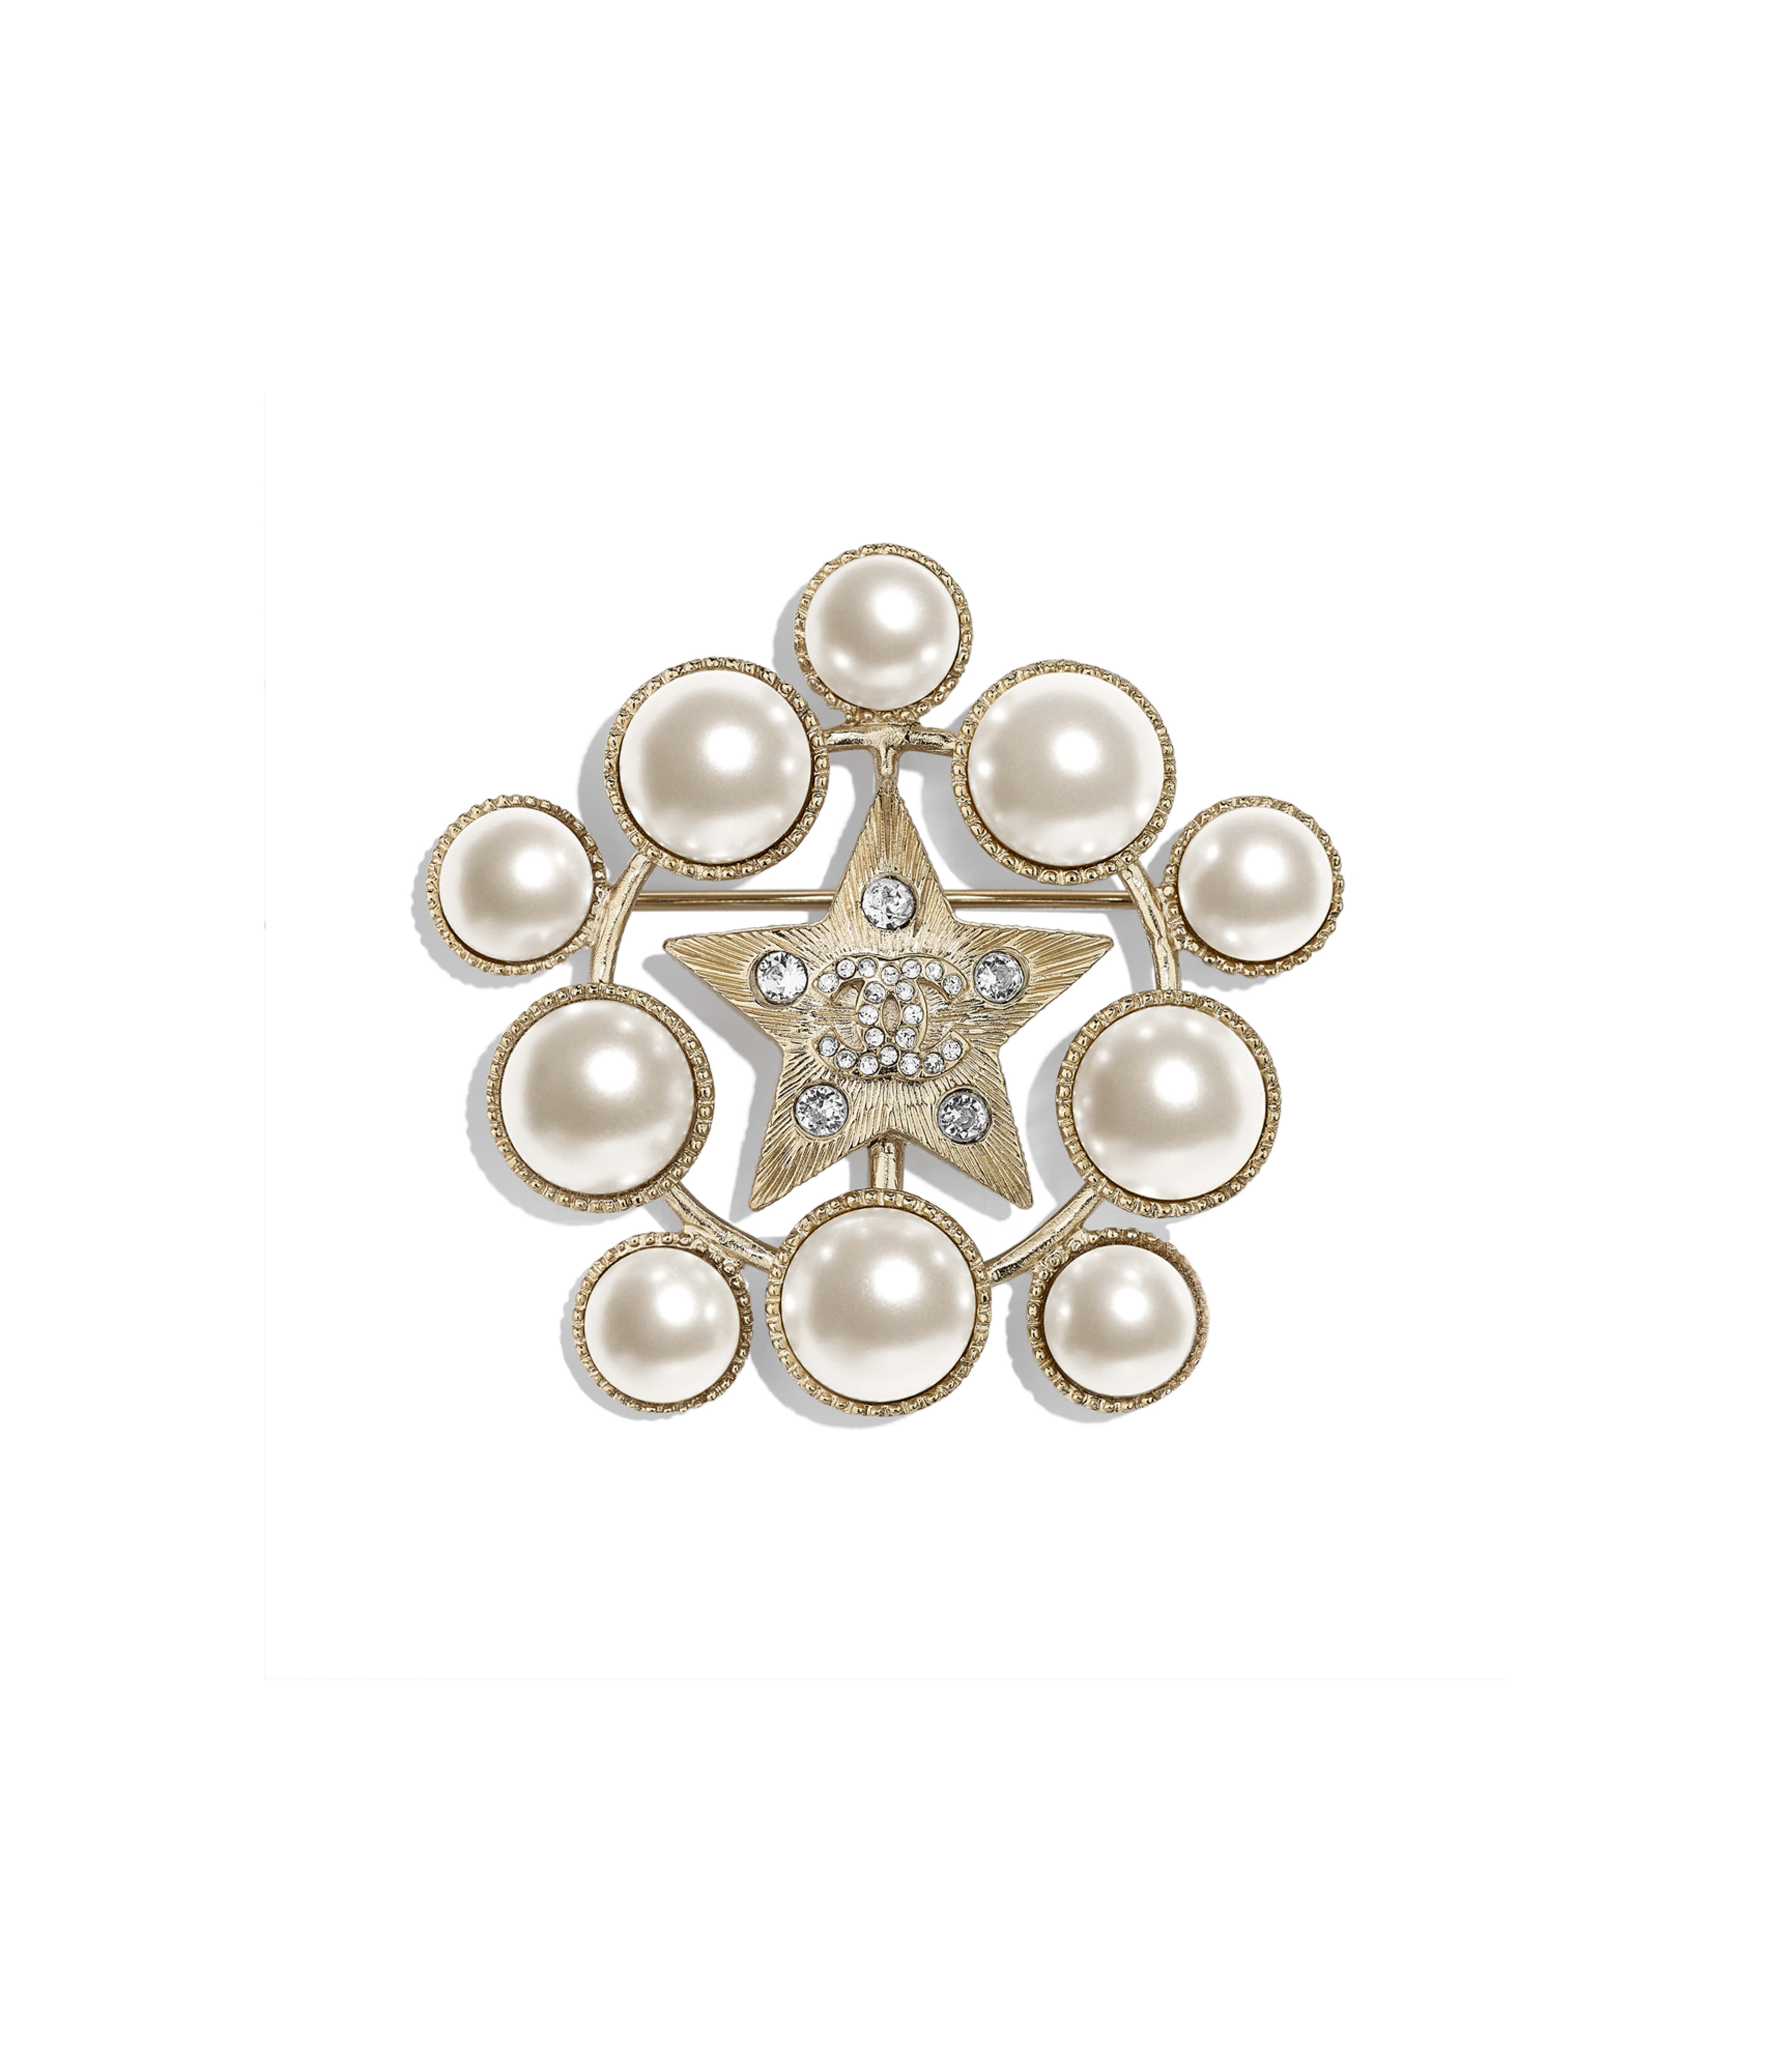 cf3d7c2d8a0 Brooch Metal, Glass Pearls & Strass, Gold, Pearly White & Crystal Ref.  AB2342Y47799Z2953